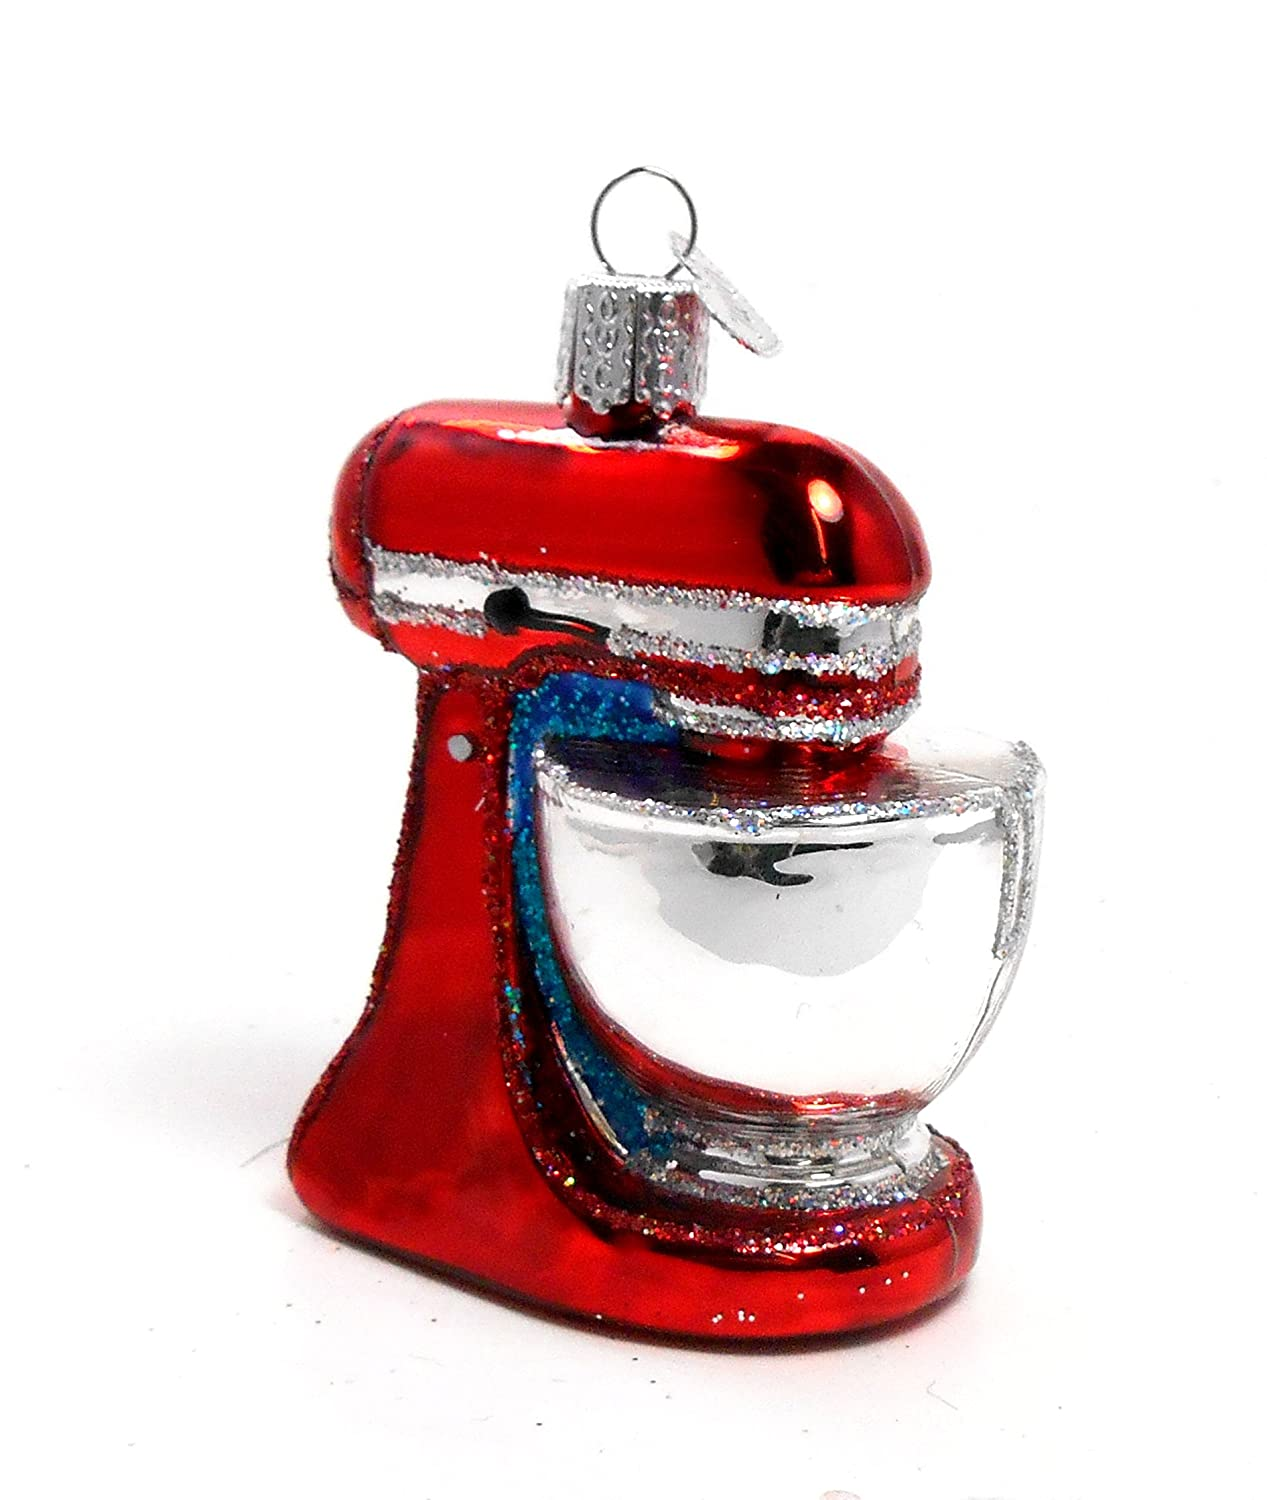 Amazon.com: Old World Christmas Kitchen Stand Mixer Appliance Mouth ...